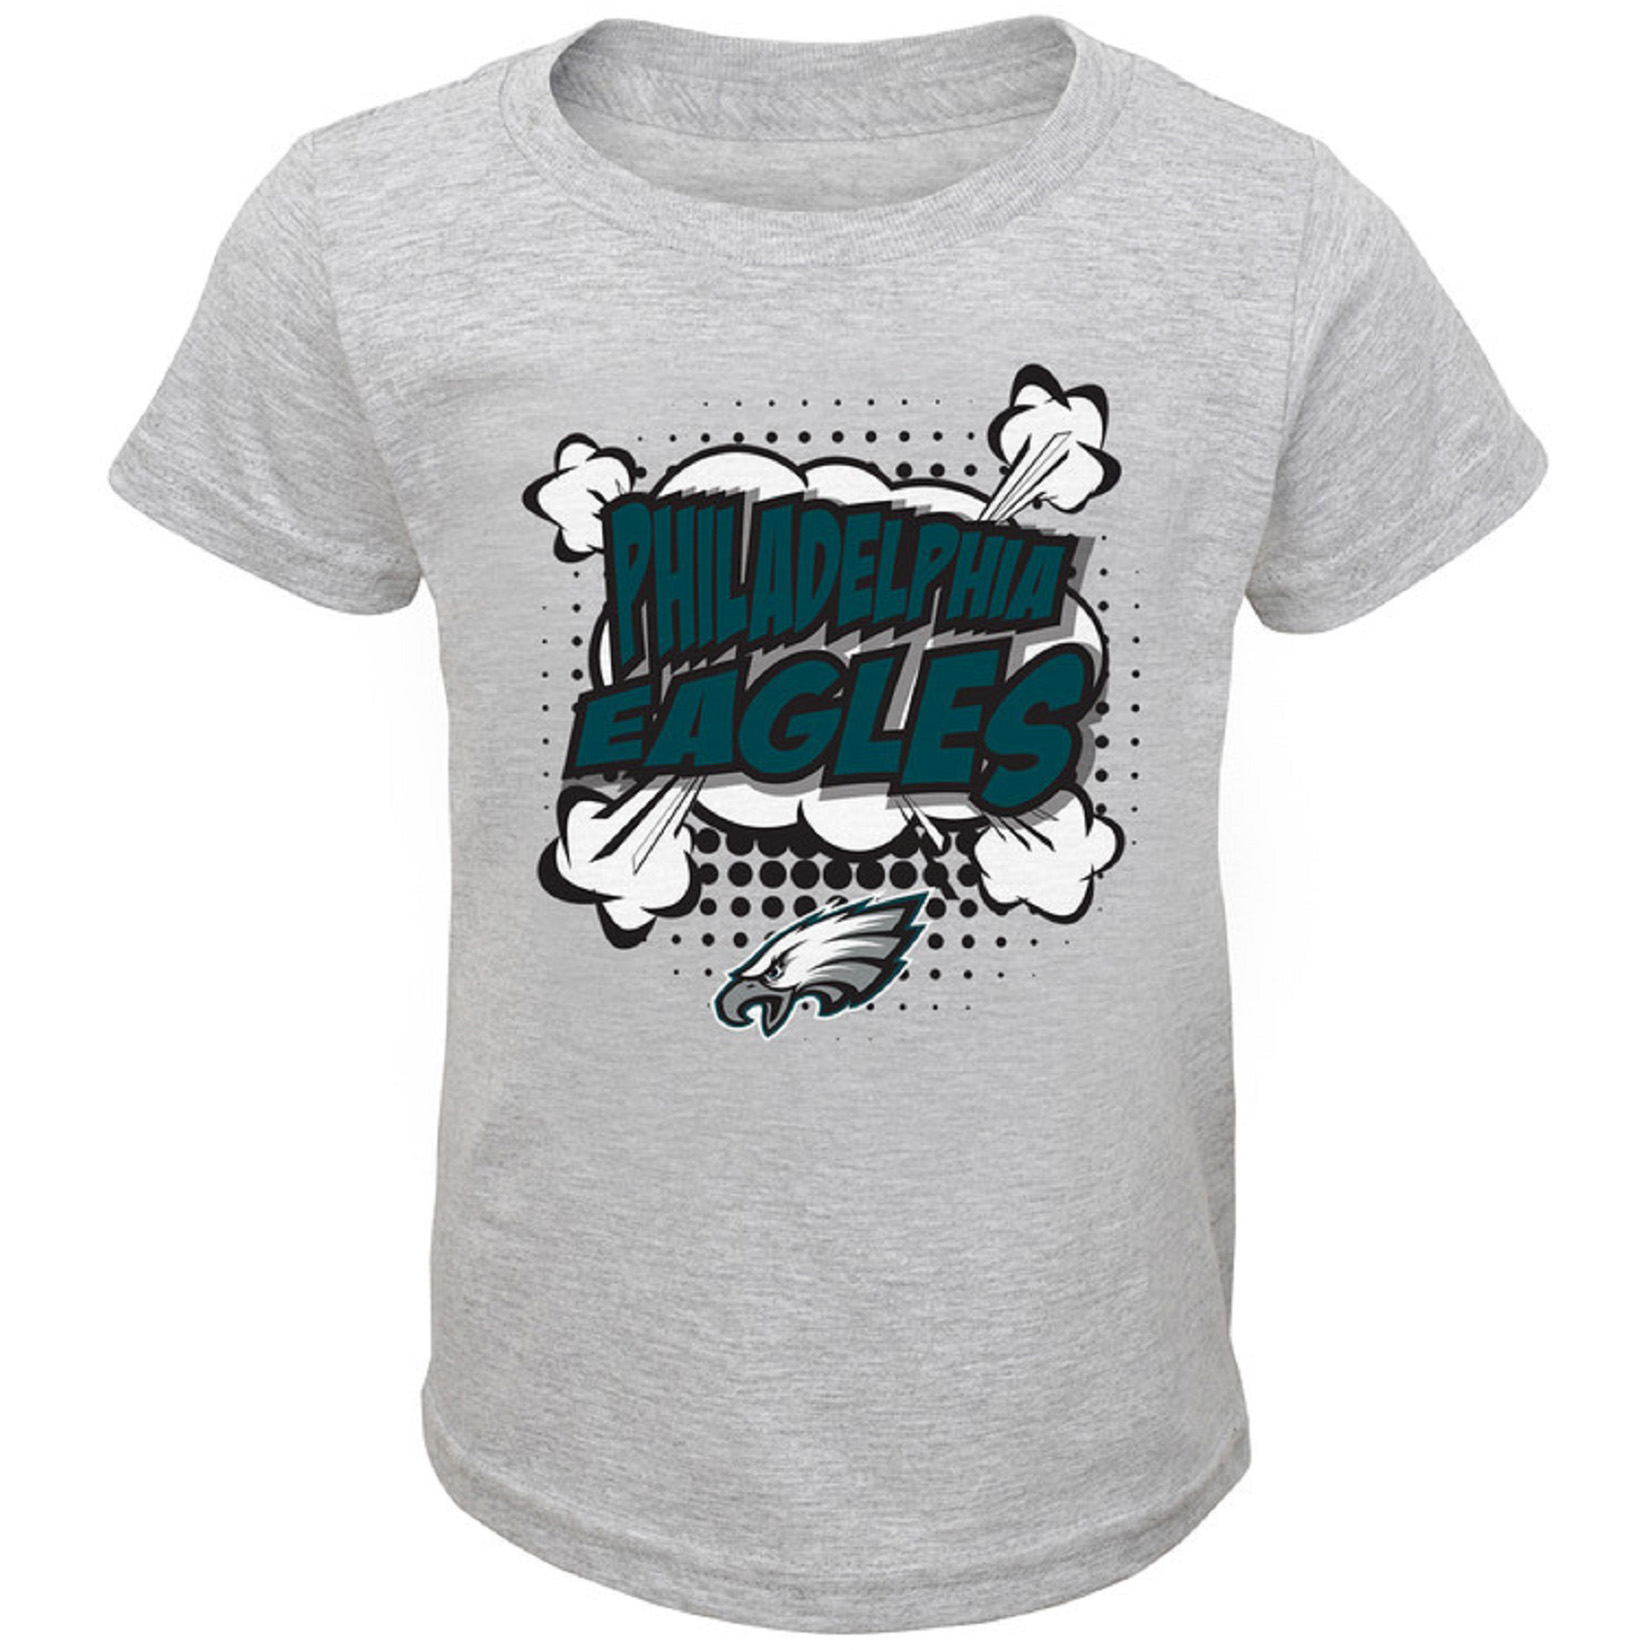 Toddler Heathered Gray Philadelphia Eagles Crew Neck T-Shirt